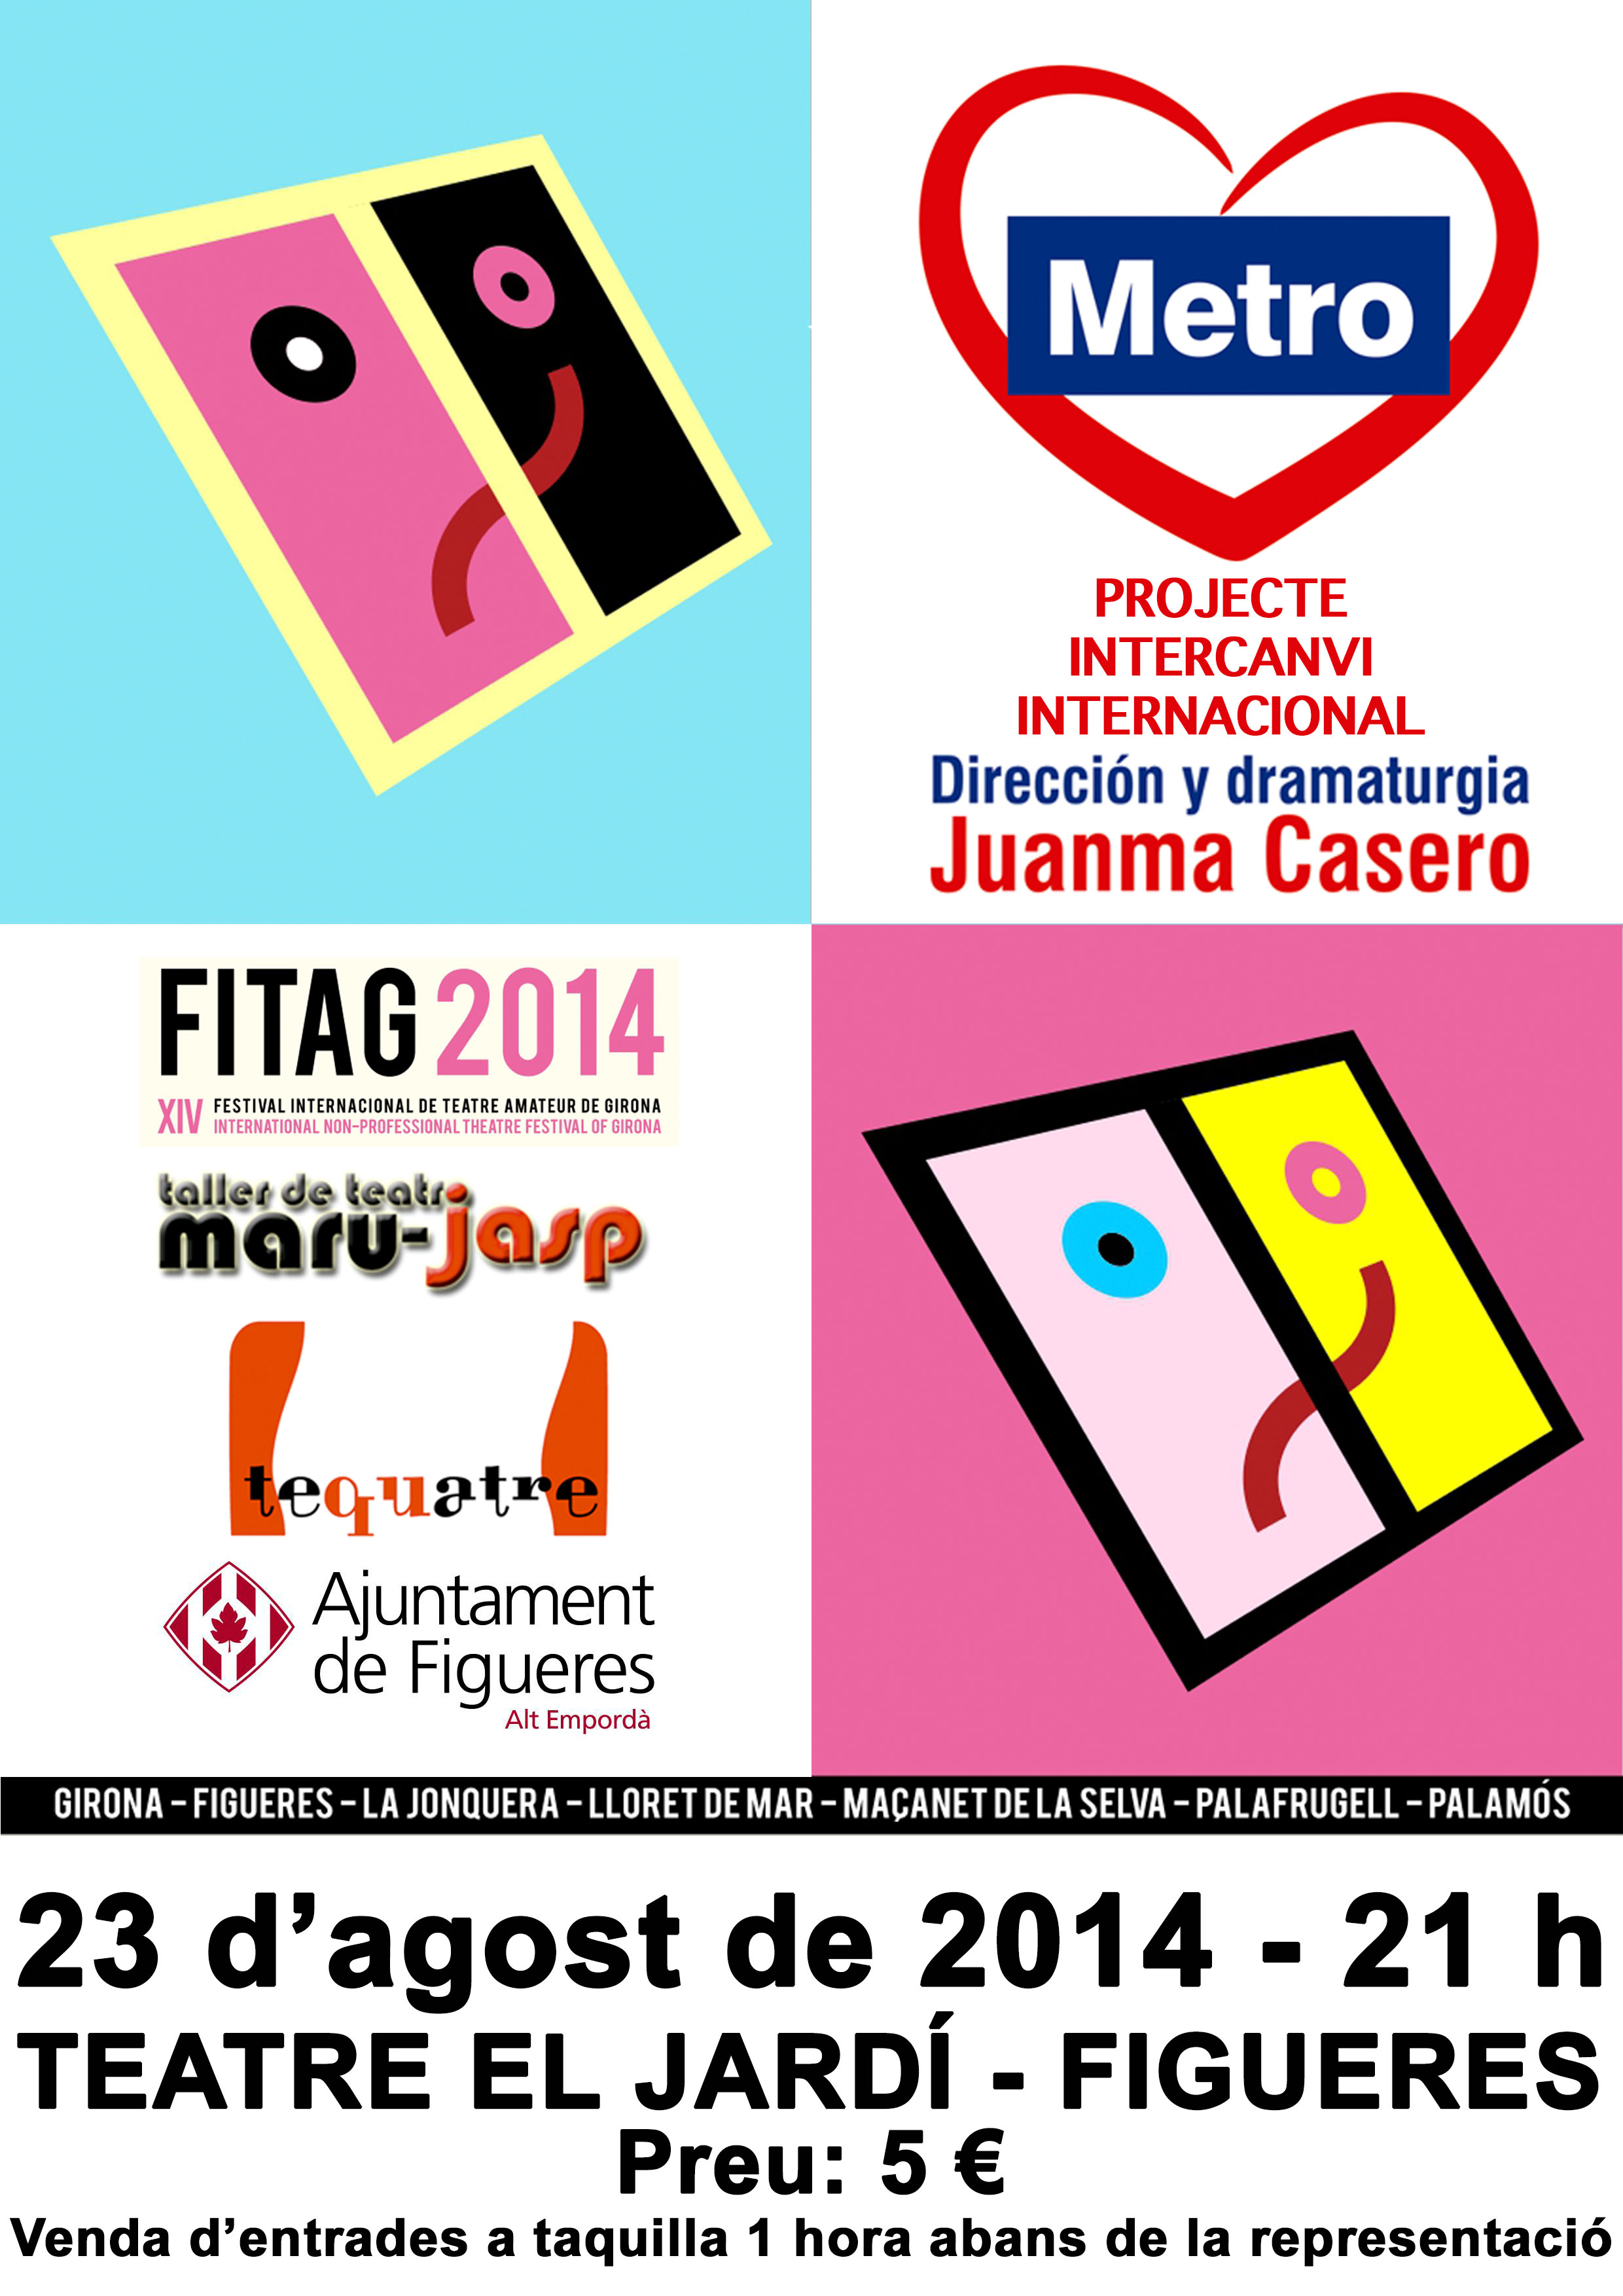 04. Cartell Metro (Figueres) - TQ 05-14